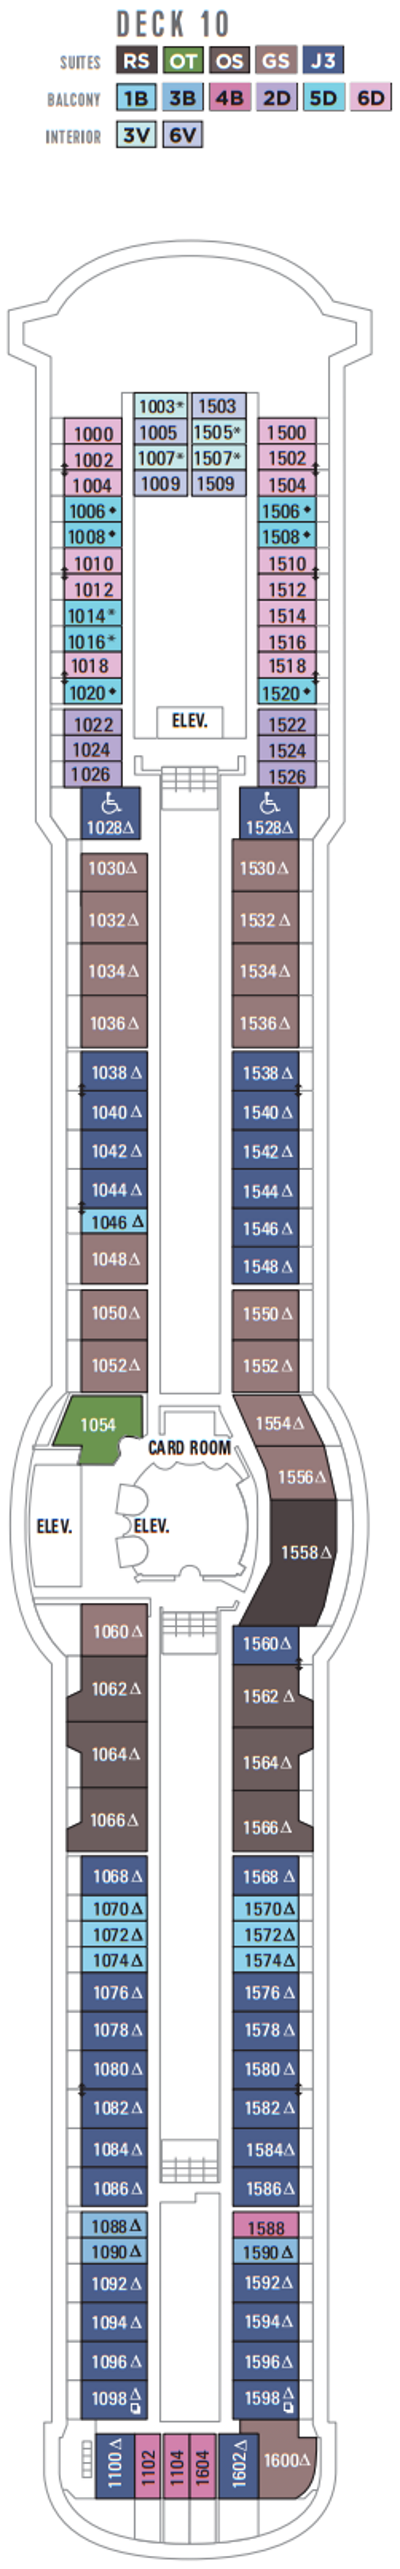 Radiance Of The Seas Deck 10 layout